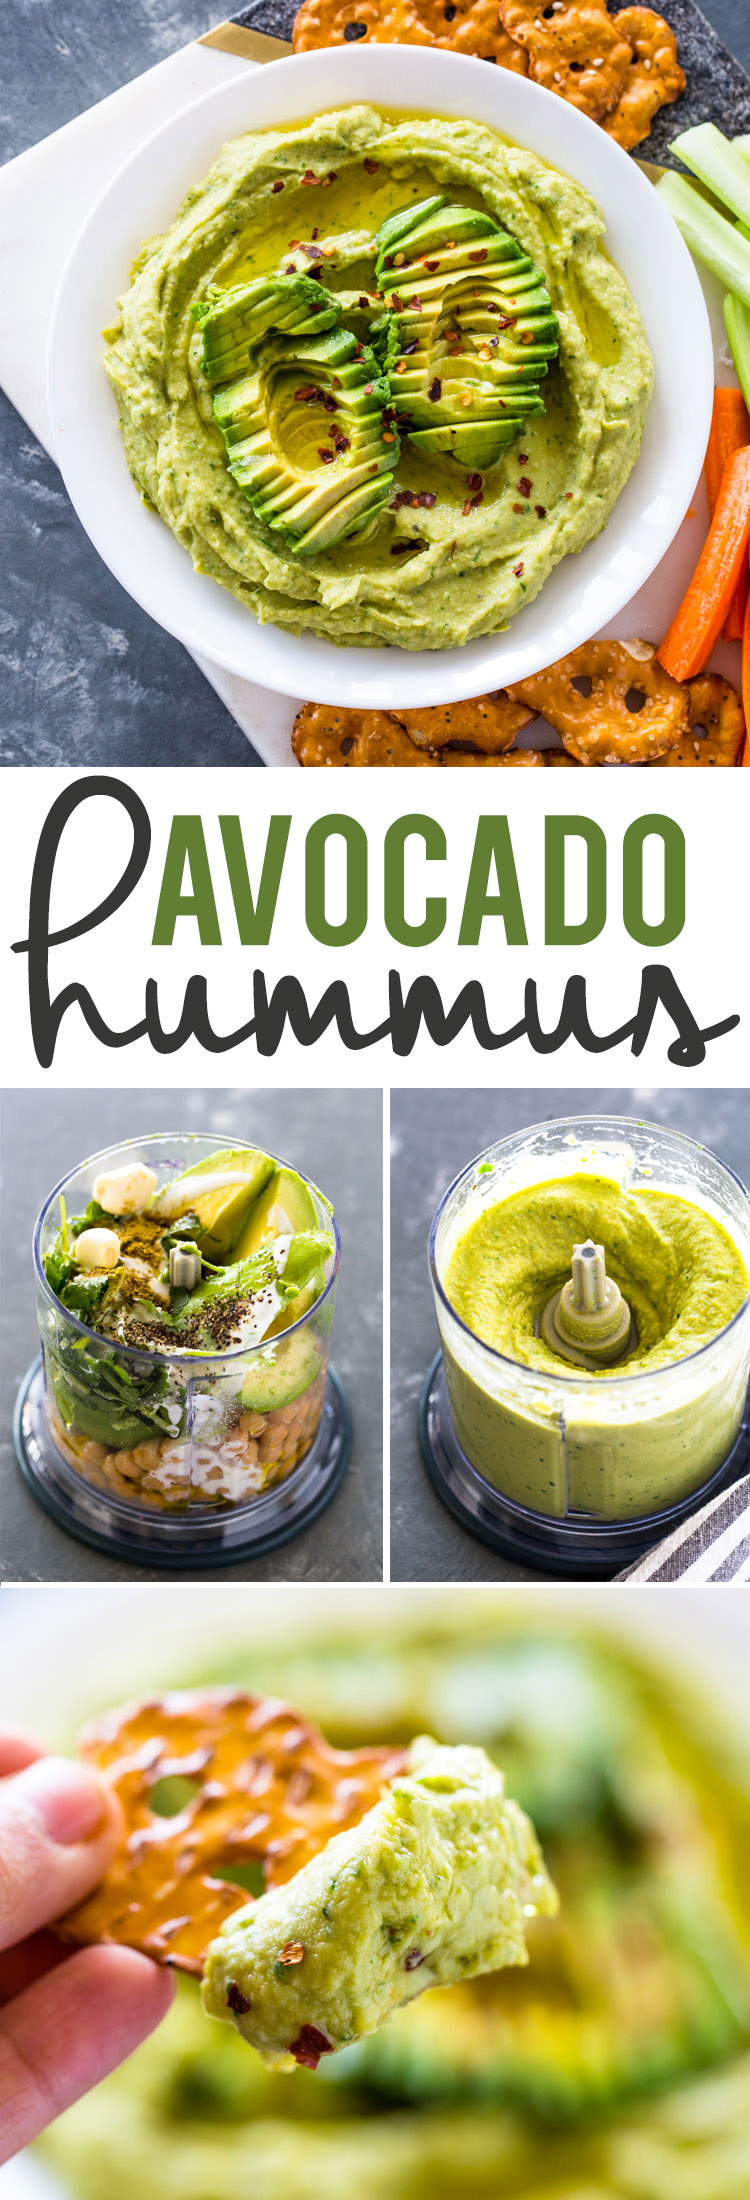 Healthy Avocado Hummus